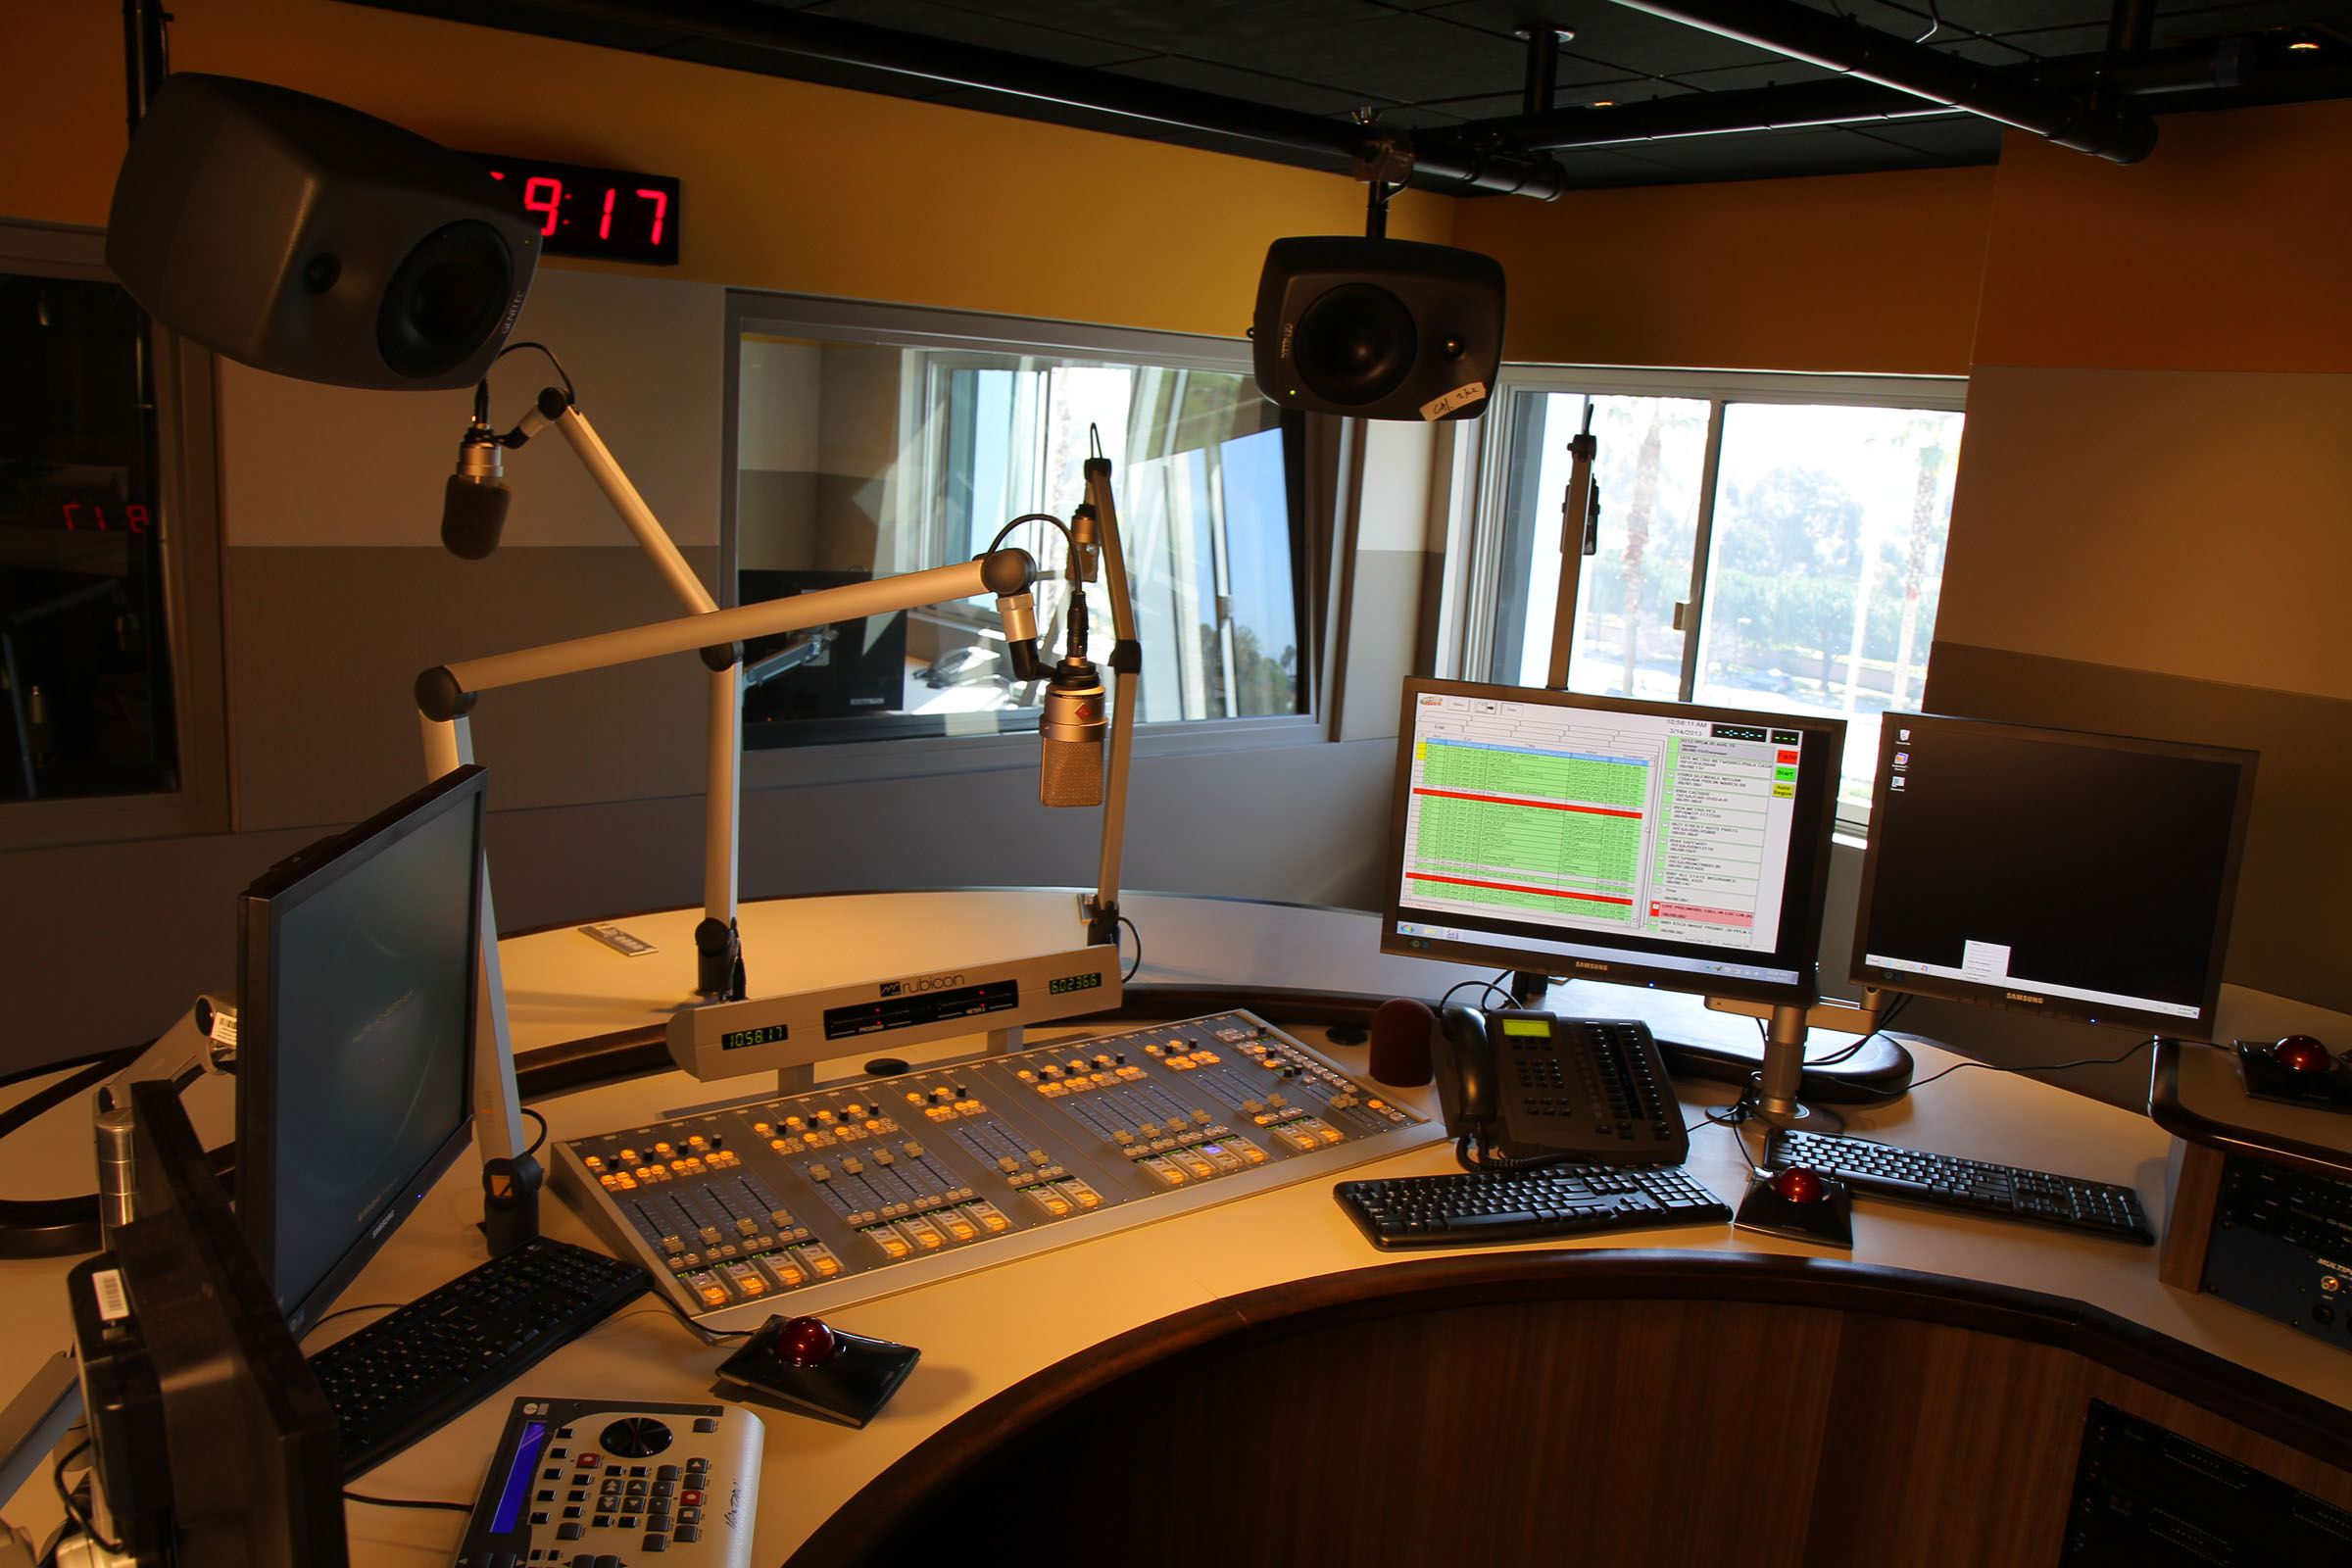 Latino broadcasting giant Univision consolidates radio facilities as